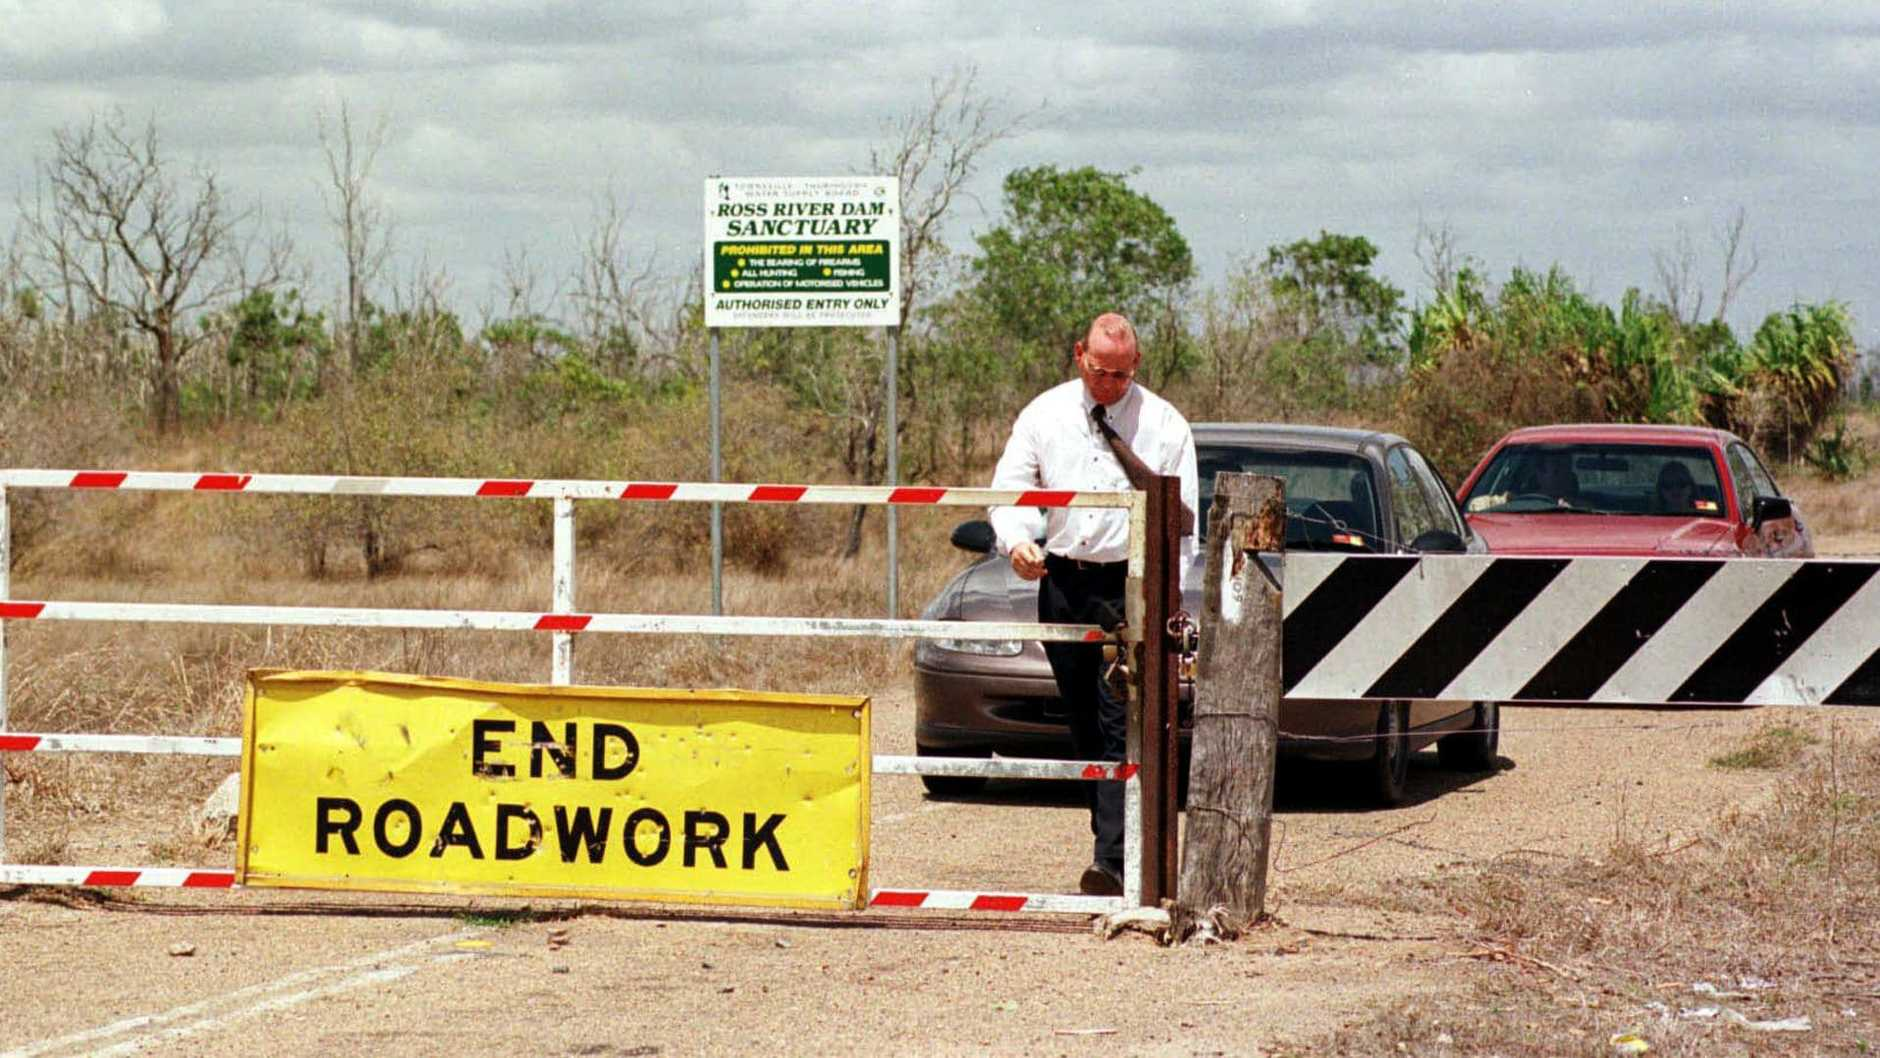 Sergeant Dave Hickey opens the gate for Judge Kerry Cullinane after looking at the Ant Hill (or Antill) Creek where the bodies of Townsville children Judith and Susan Mackay were found in 1970. Pic Steve Brennan. Queensland / Crime